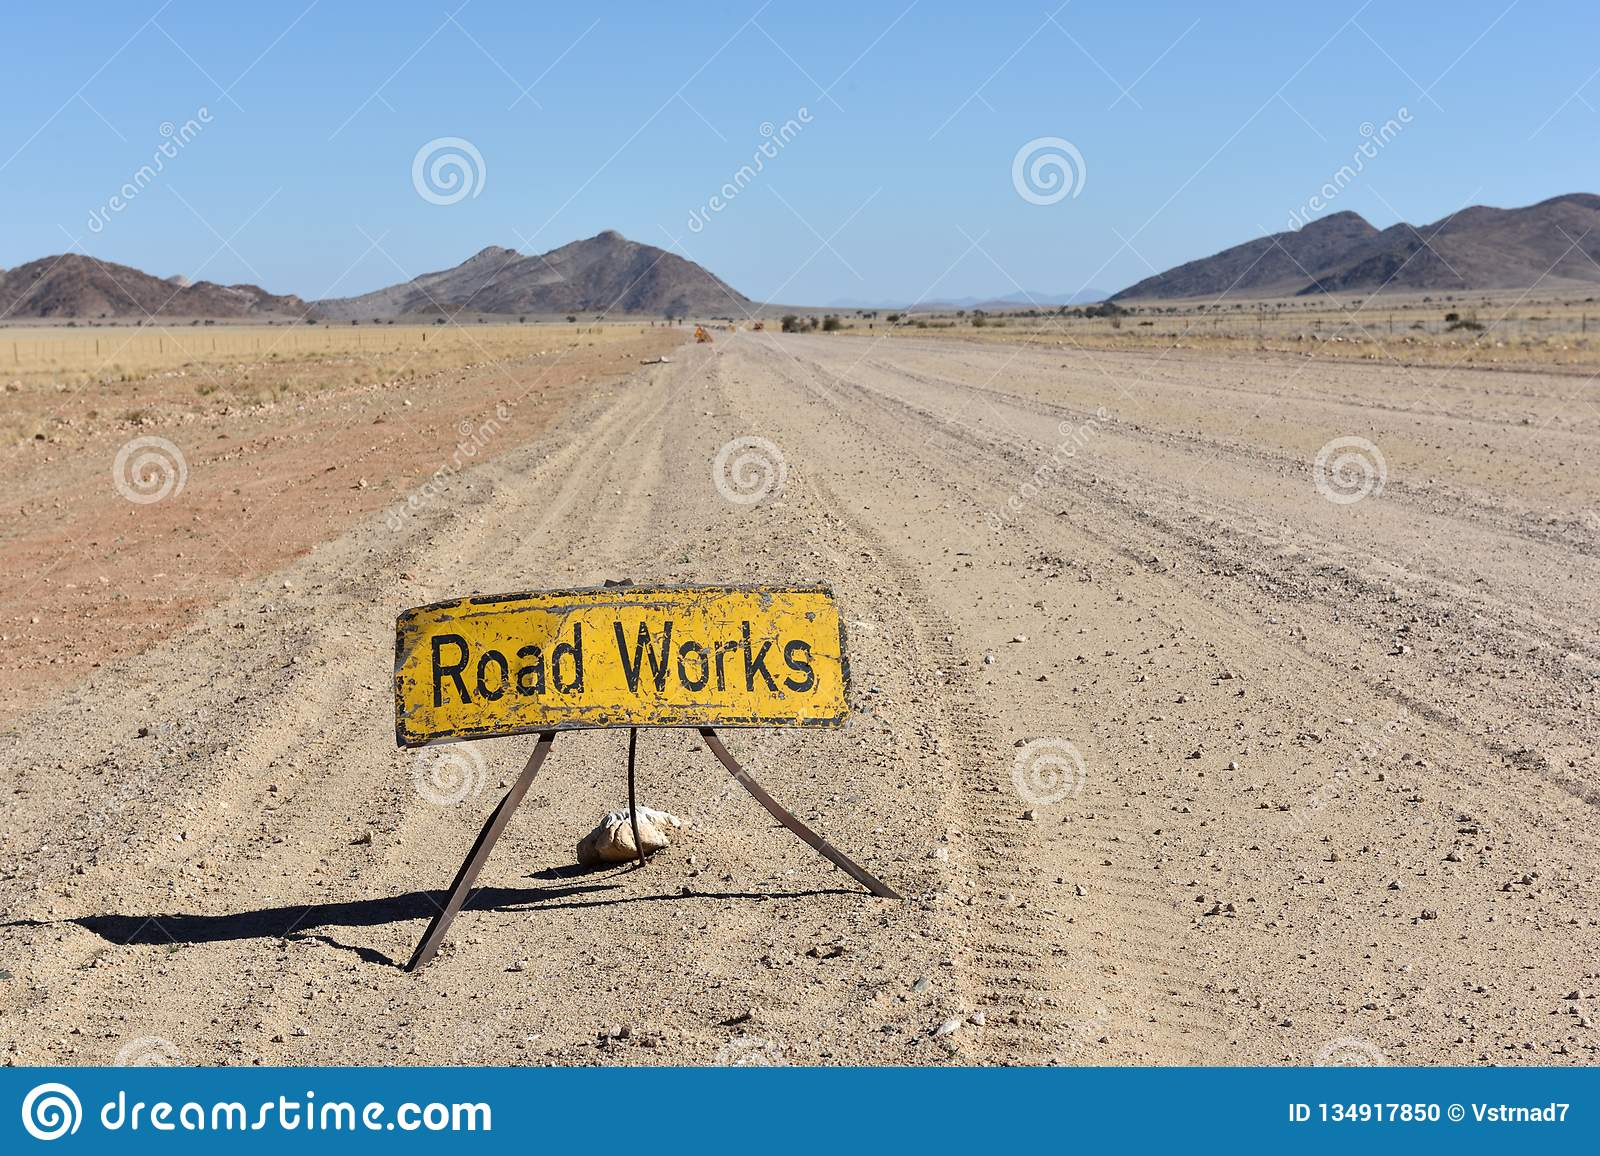 Road Works in Africa, Namibia